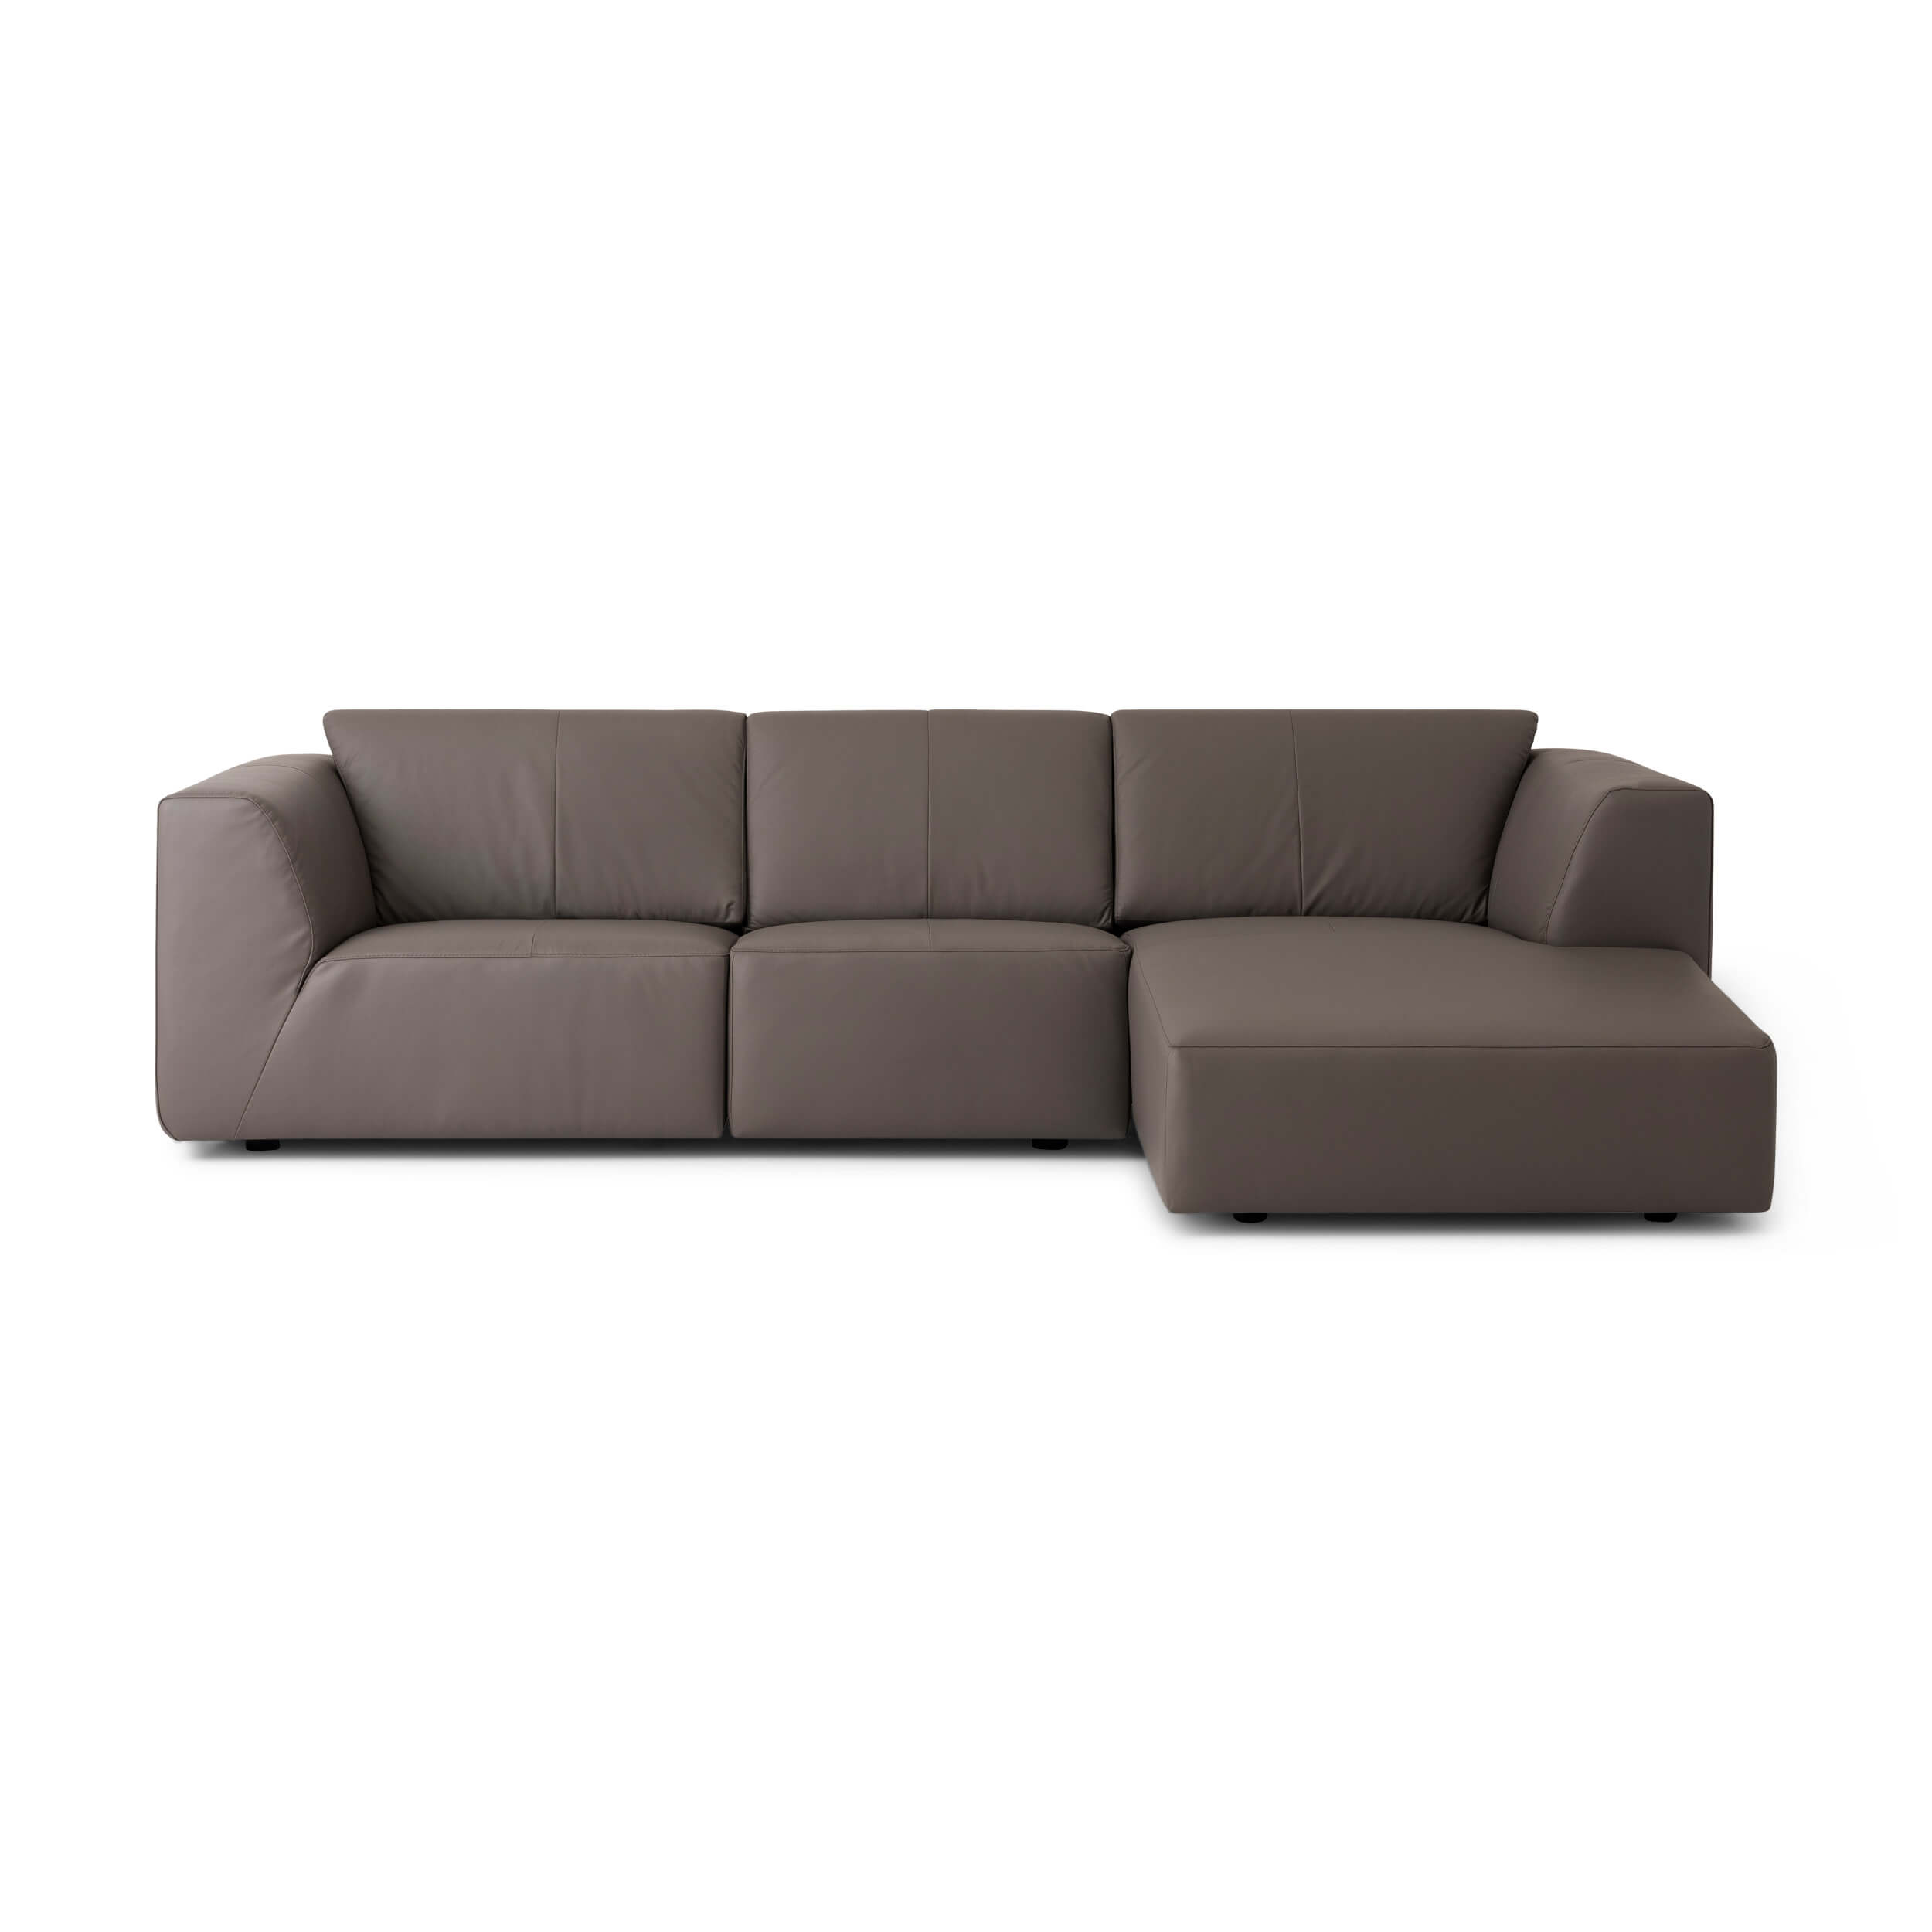 Morten 3-Piece Sectional Sofa With Chaise - Leather